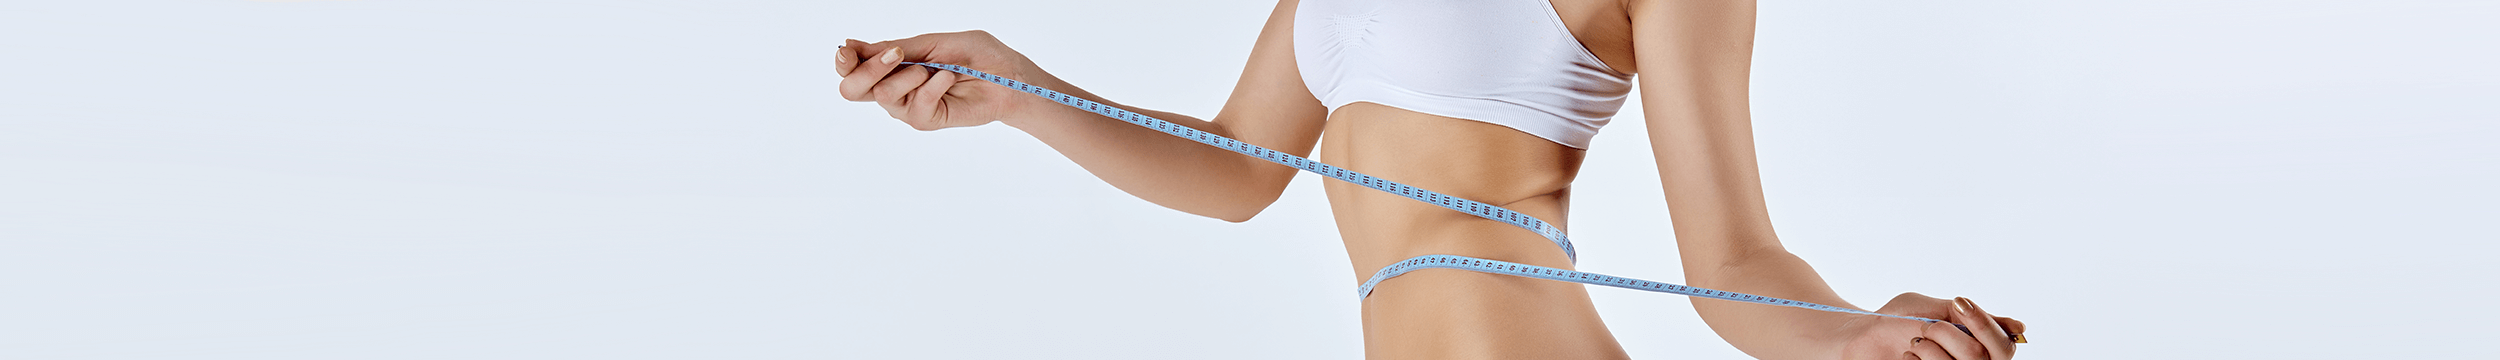 woman in white bra and underwear with tape measure wrapped around body